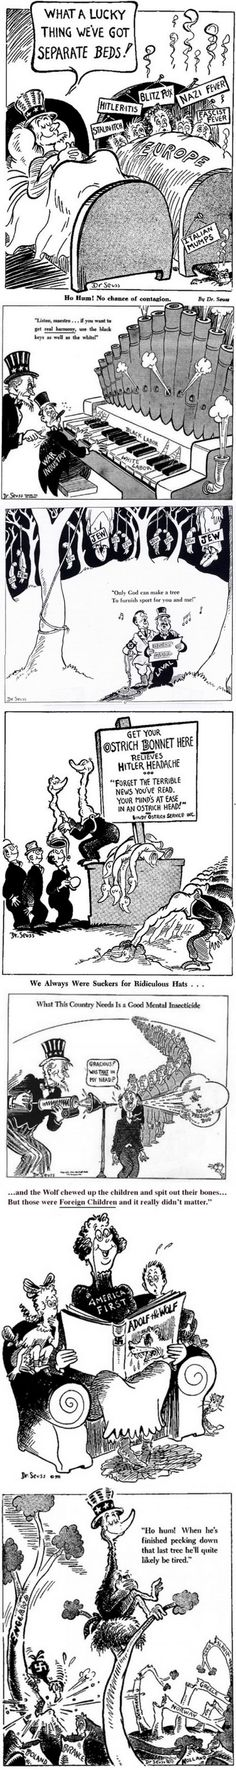 Seuss used to draw political cartoons as well Dr. Suess used to draw political cartoons as wellDr. Suess used to draw political cartoons as well Teaching Us History, Teaching Social Studies, History Teachers, History Classroom, Ap World History, History Facts, American History, History Photos, History Essay